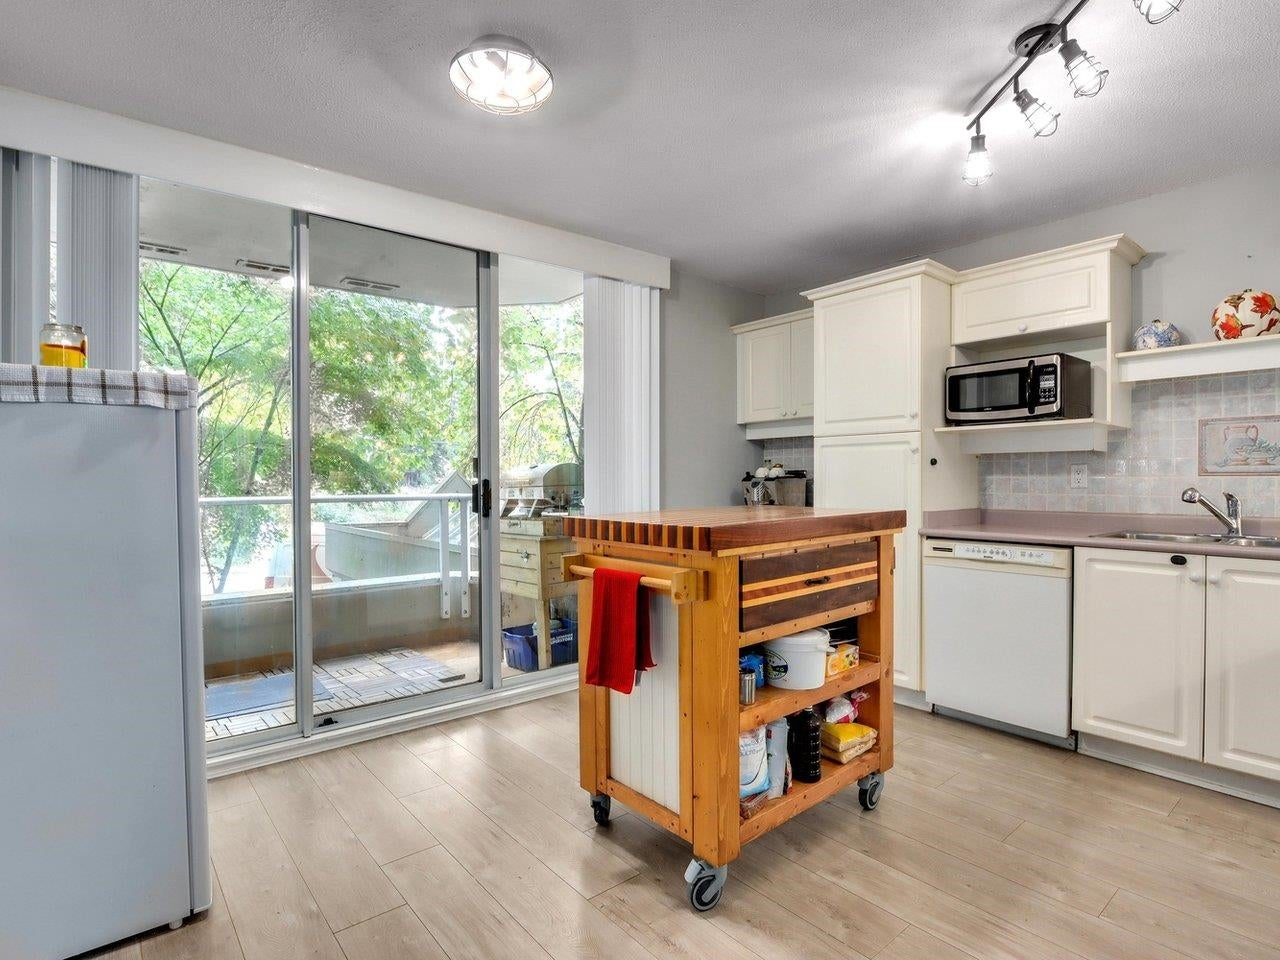 302 412 TWELFTH STREET - Uptown NW Apartment/Condo for sale, 2 Bedrooms (R2625659) - #7